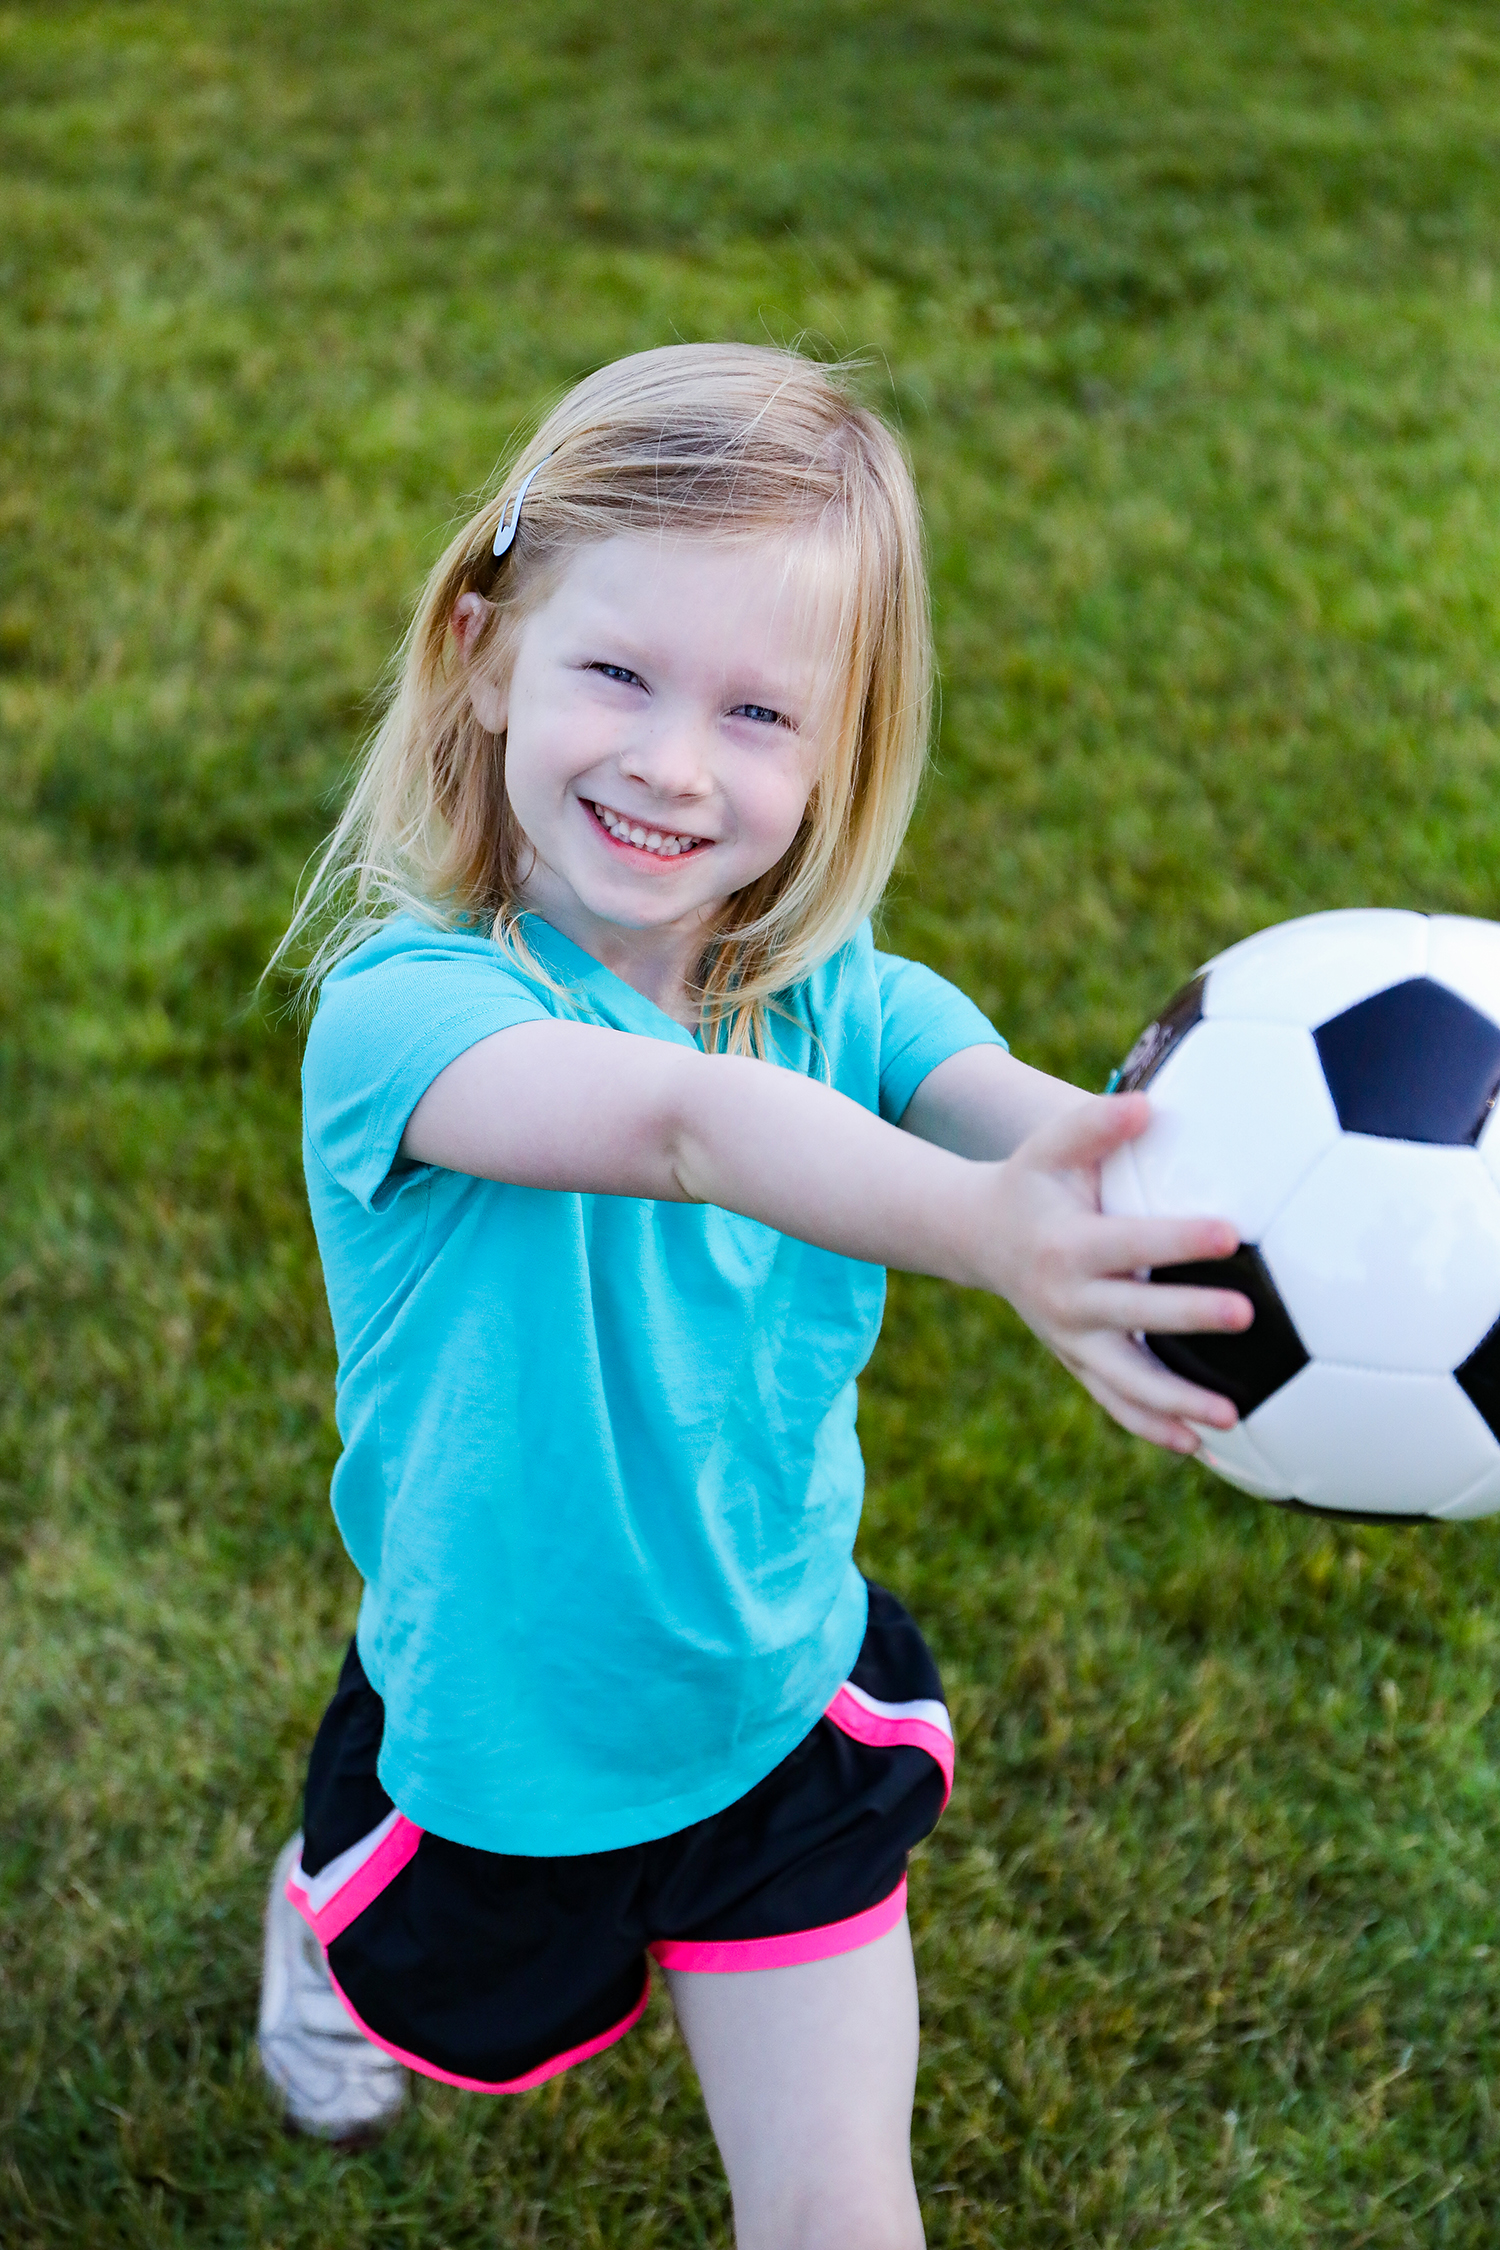 Girl Power: How this non-sporty mom is empowering her daughter and becoming a soccer mom........the five reasons organized sports empower young girls.